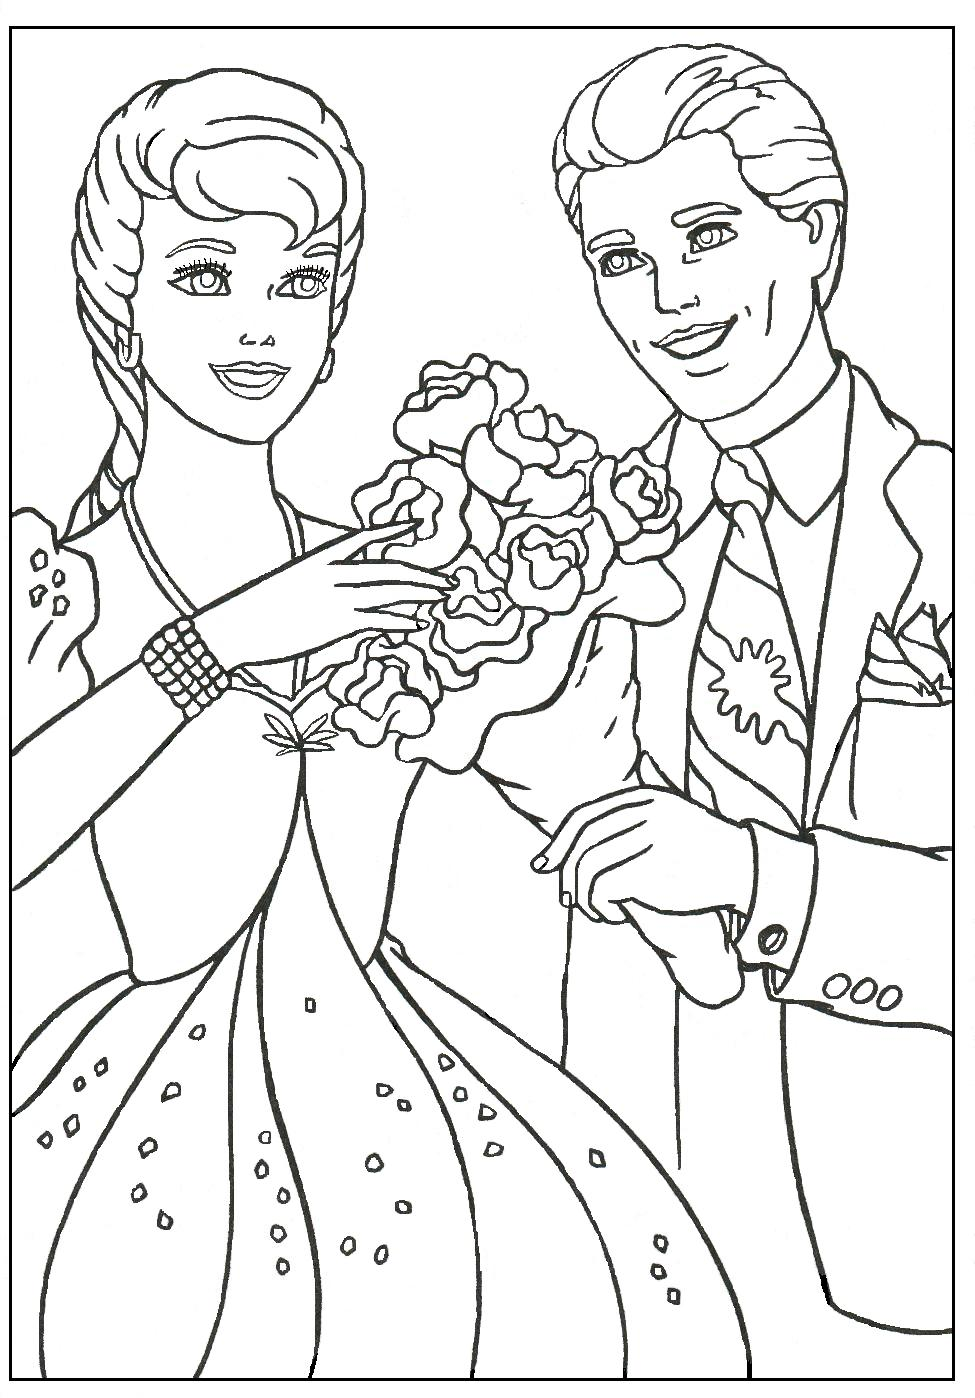 Ken coloring pages related keywords suggestions ken coloring